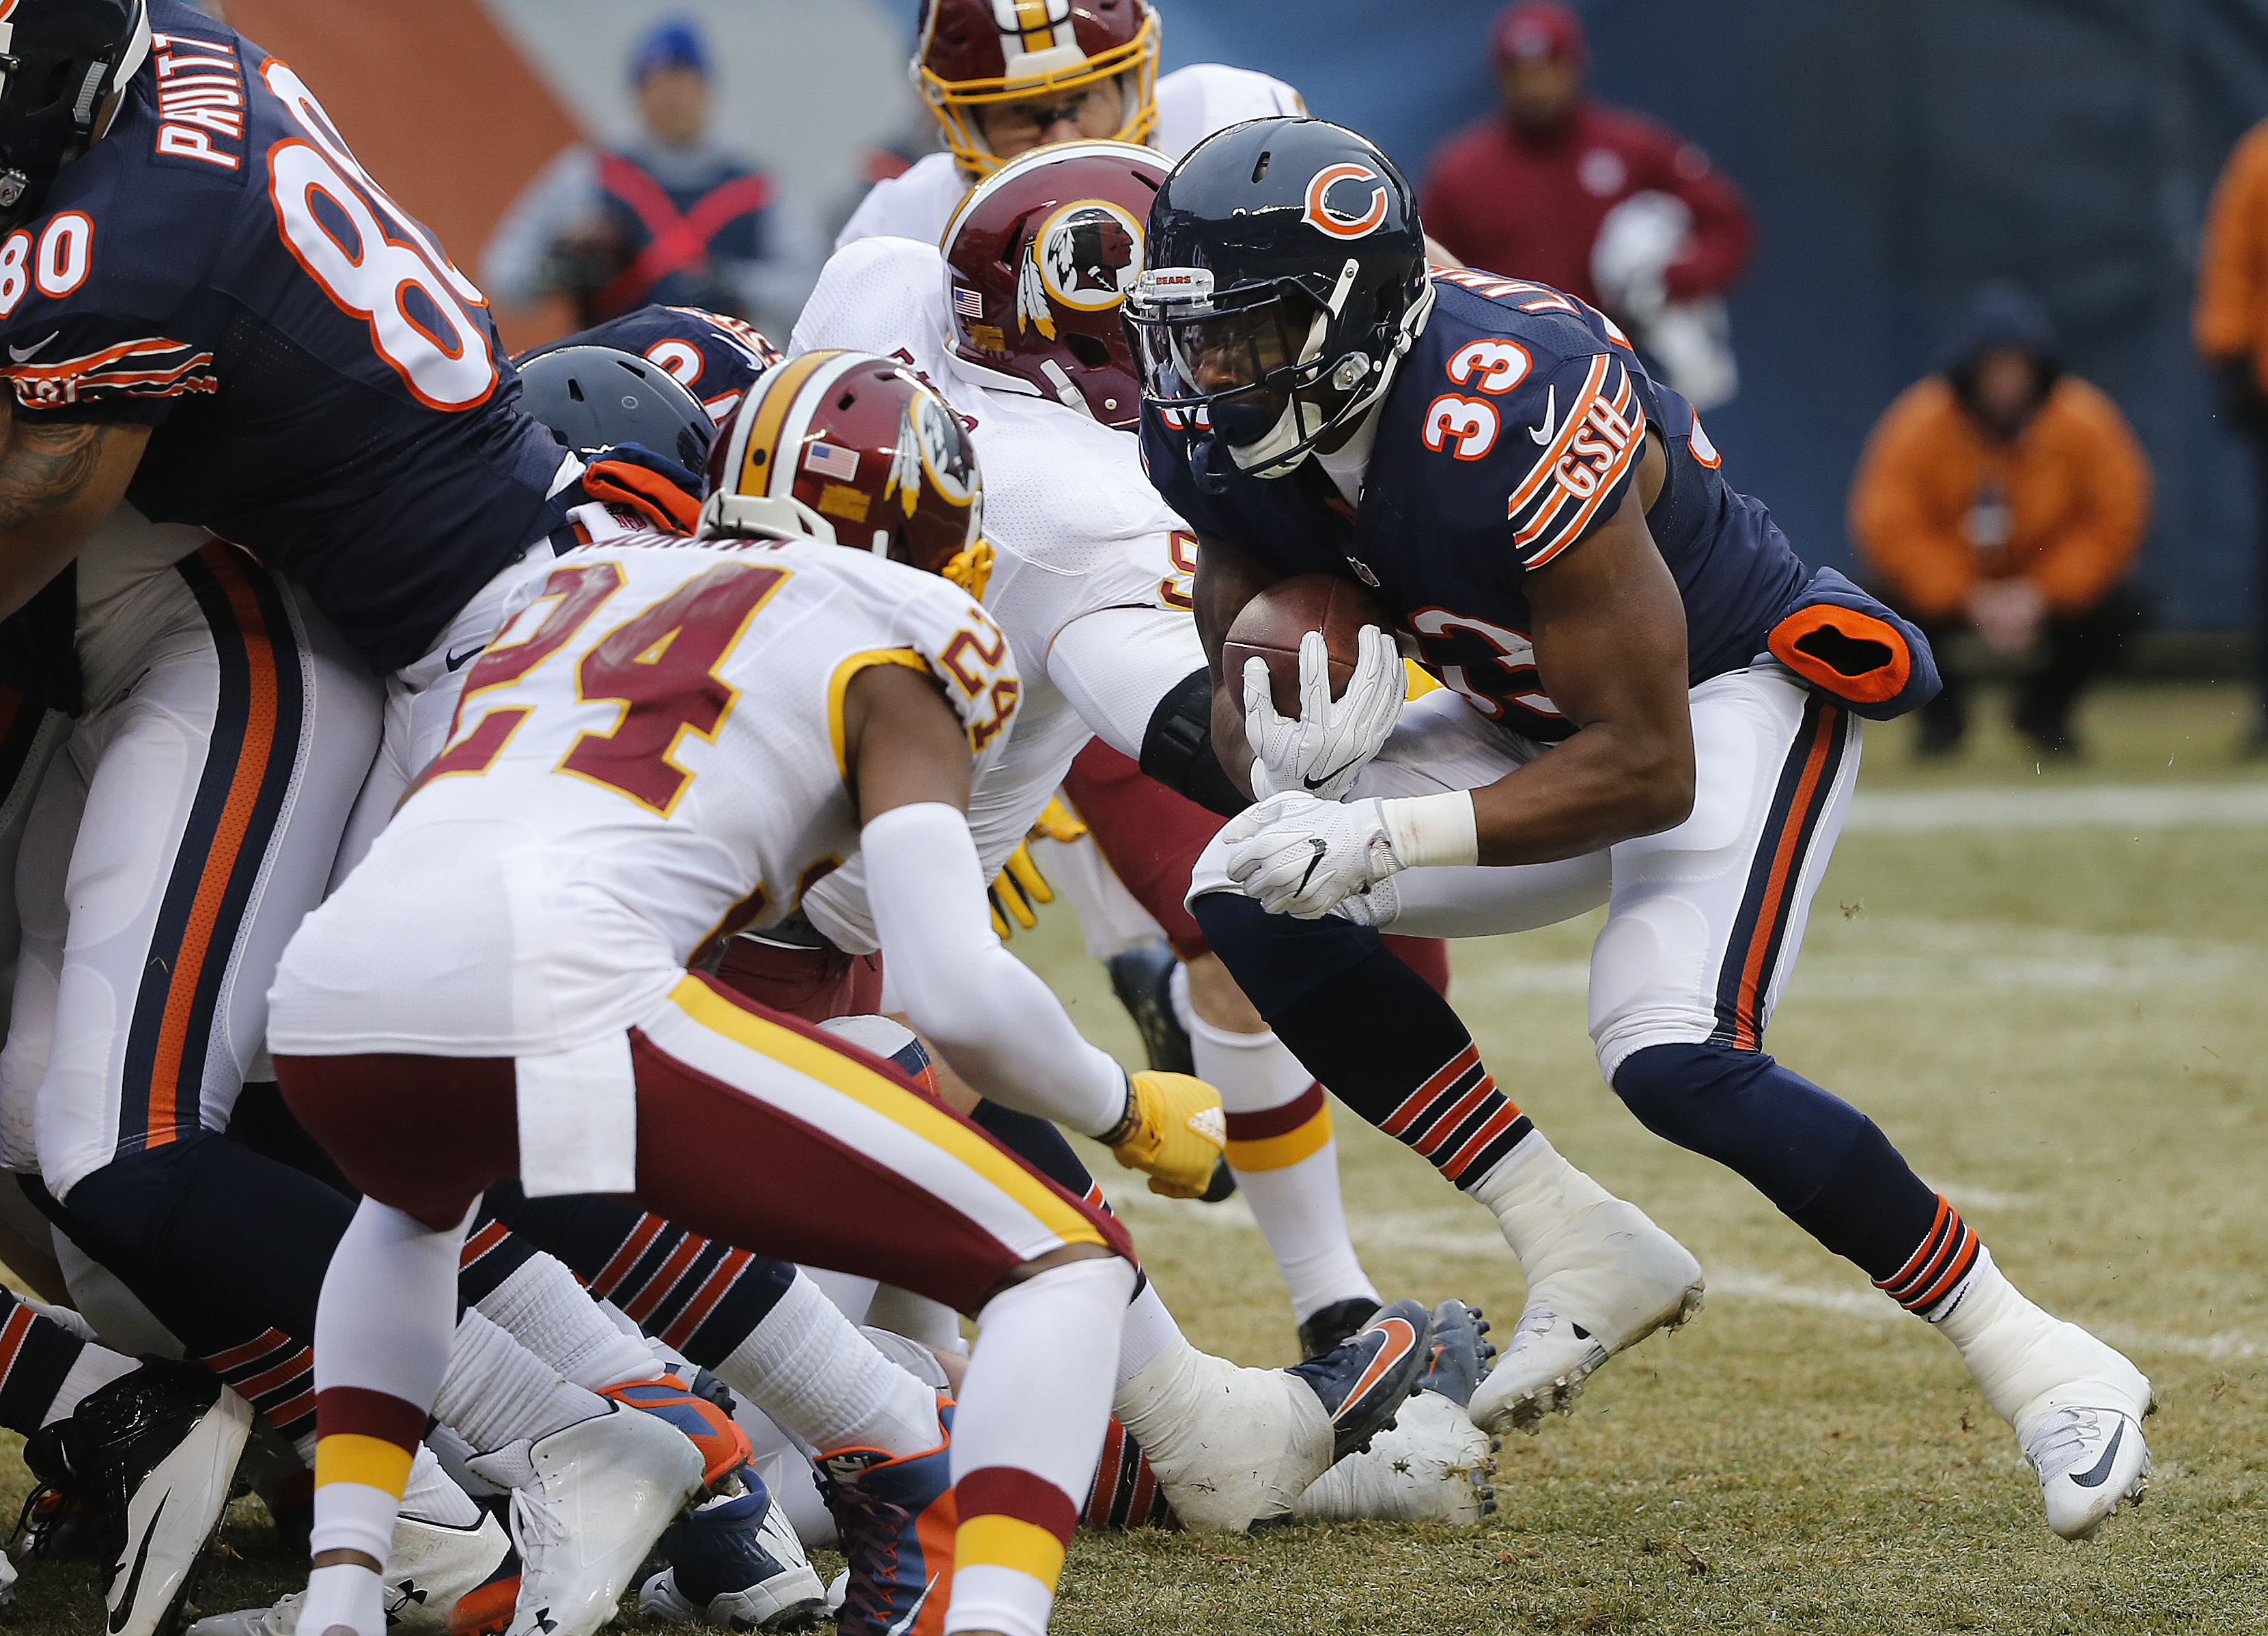 Chicago Bears running back Jeremy Langford (33) scores on a one-yard touchdown run against the Washington Redskins during the first half of an NFL football game, Saturday, Dec. 24, 2016, in Chicago. (AP Photo/Charles Rex Arbogast)